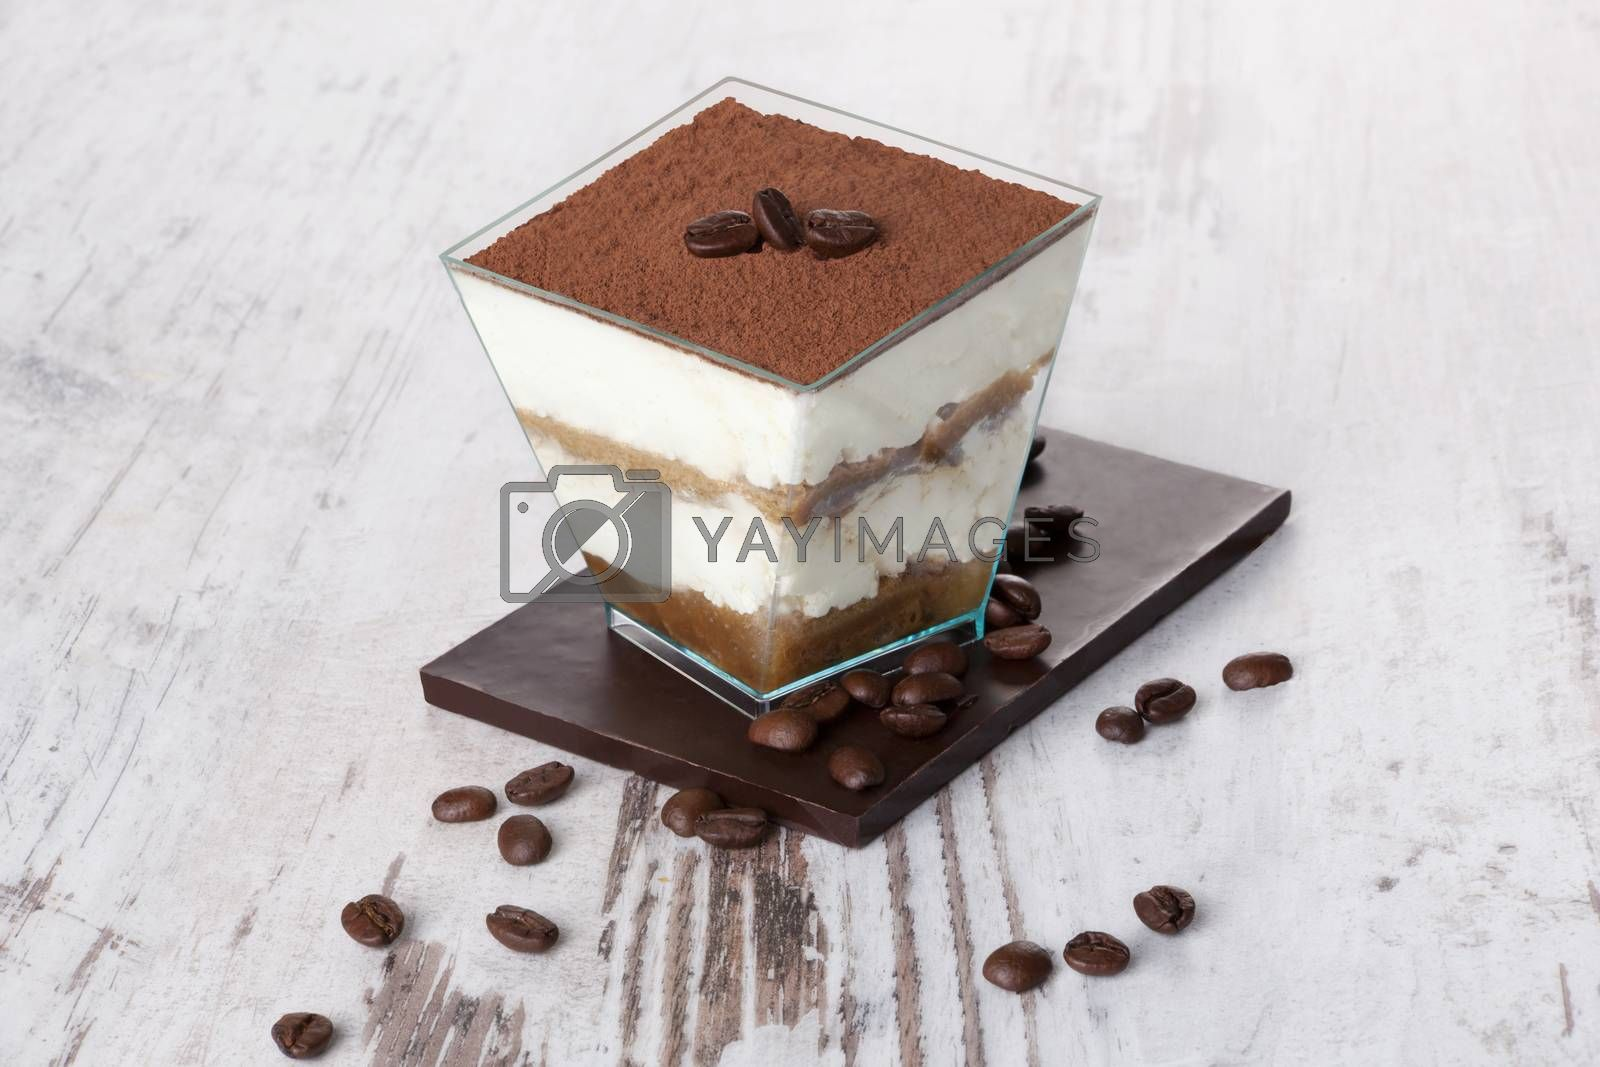 Tiramisu dessert with chocolate and coffee beans on white wooden textured table. Traditional tiramisu dessert, rustic, country style.